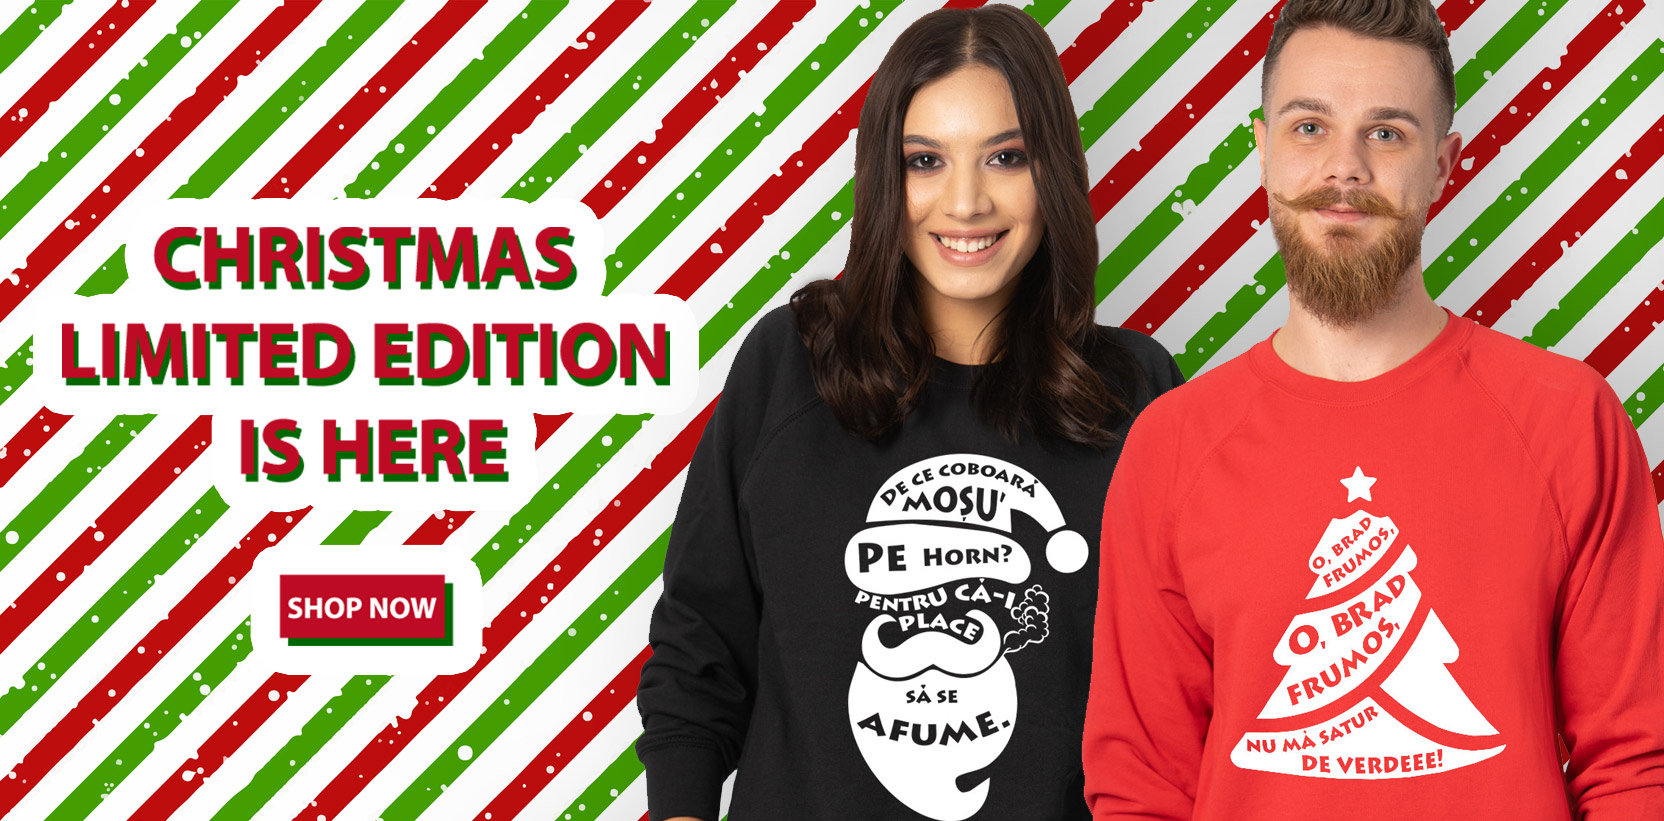 Christmas limited edition 2